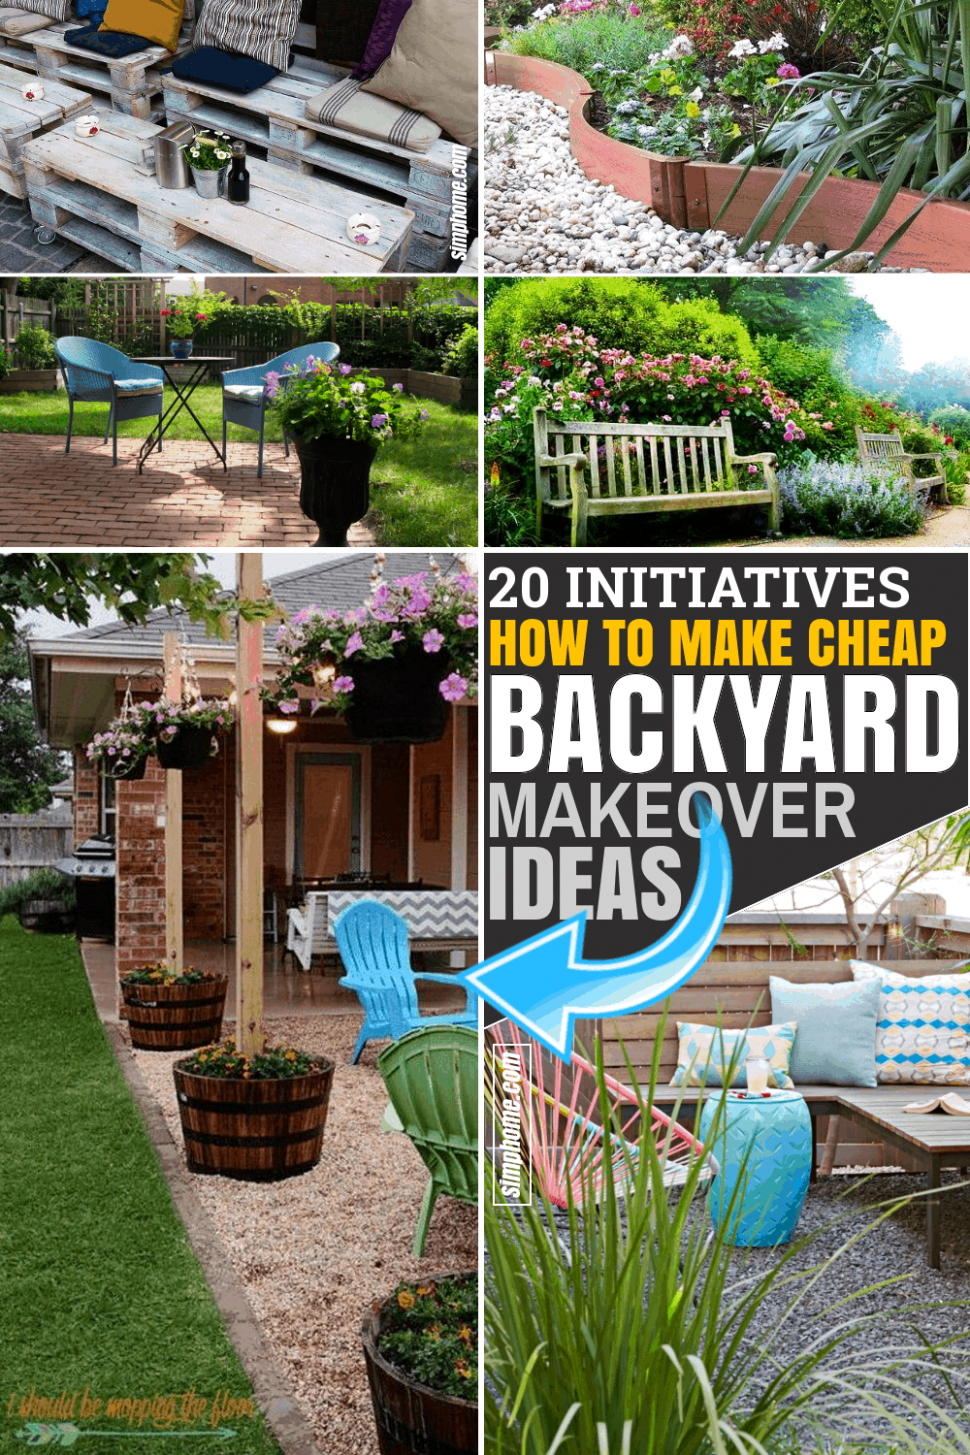 11 Initiatives of Cheap Backyard Makeover Ideas - Simphome - backyard ideas on a budget